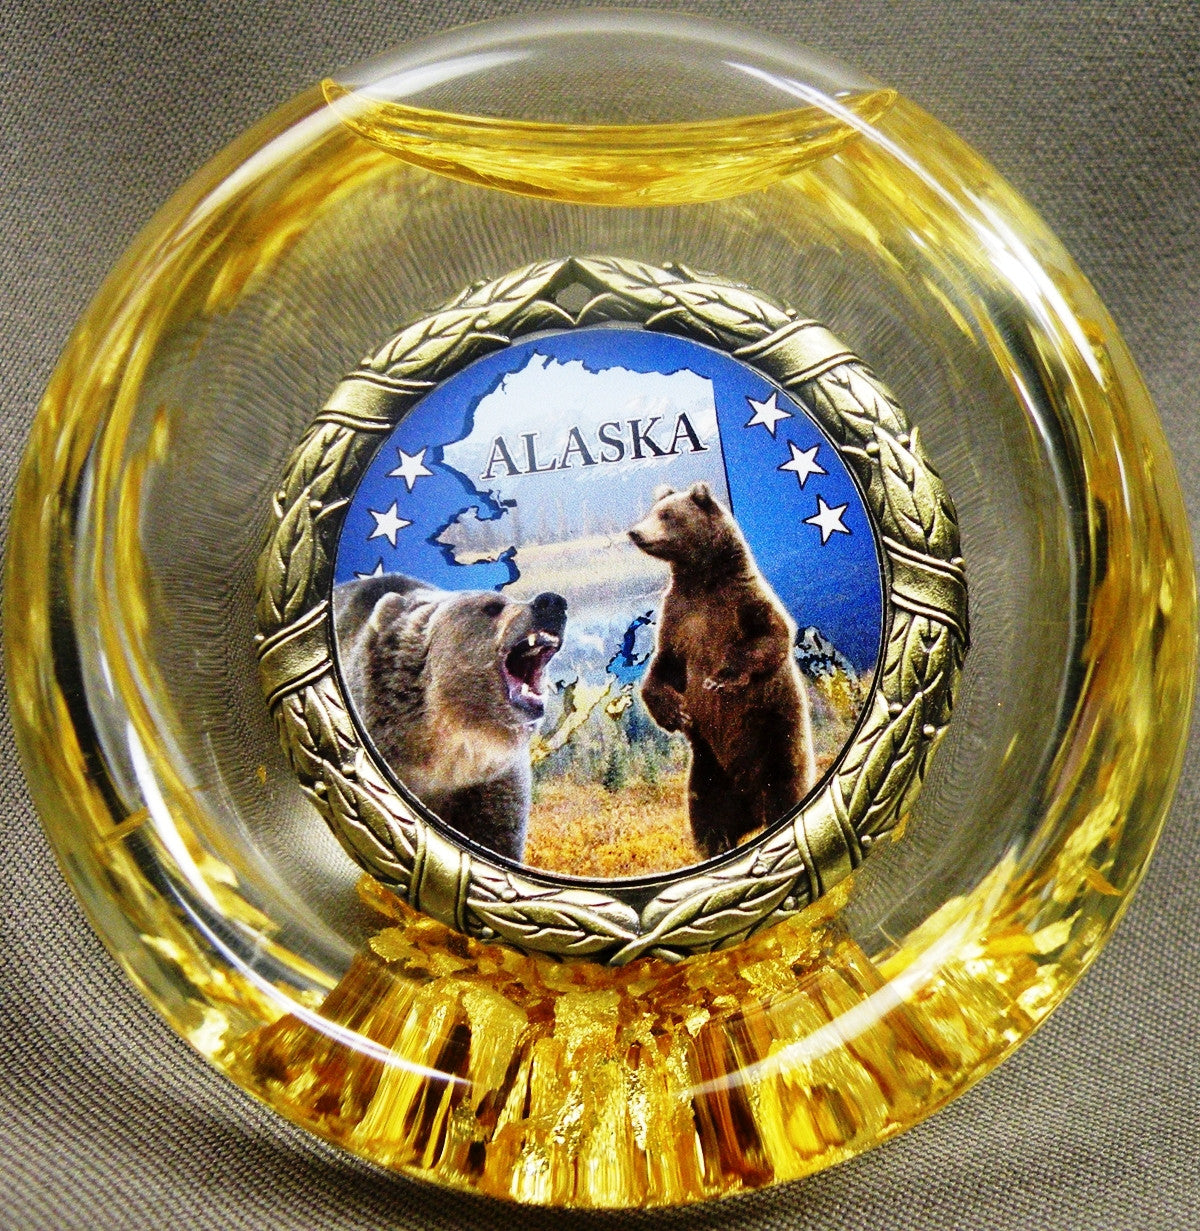 GoldenFlow Alaskan Grizzly